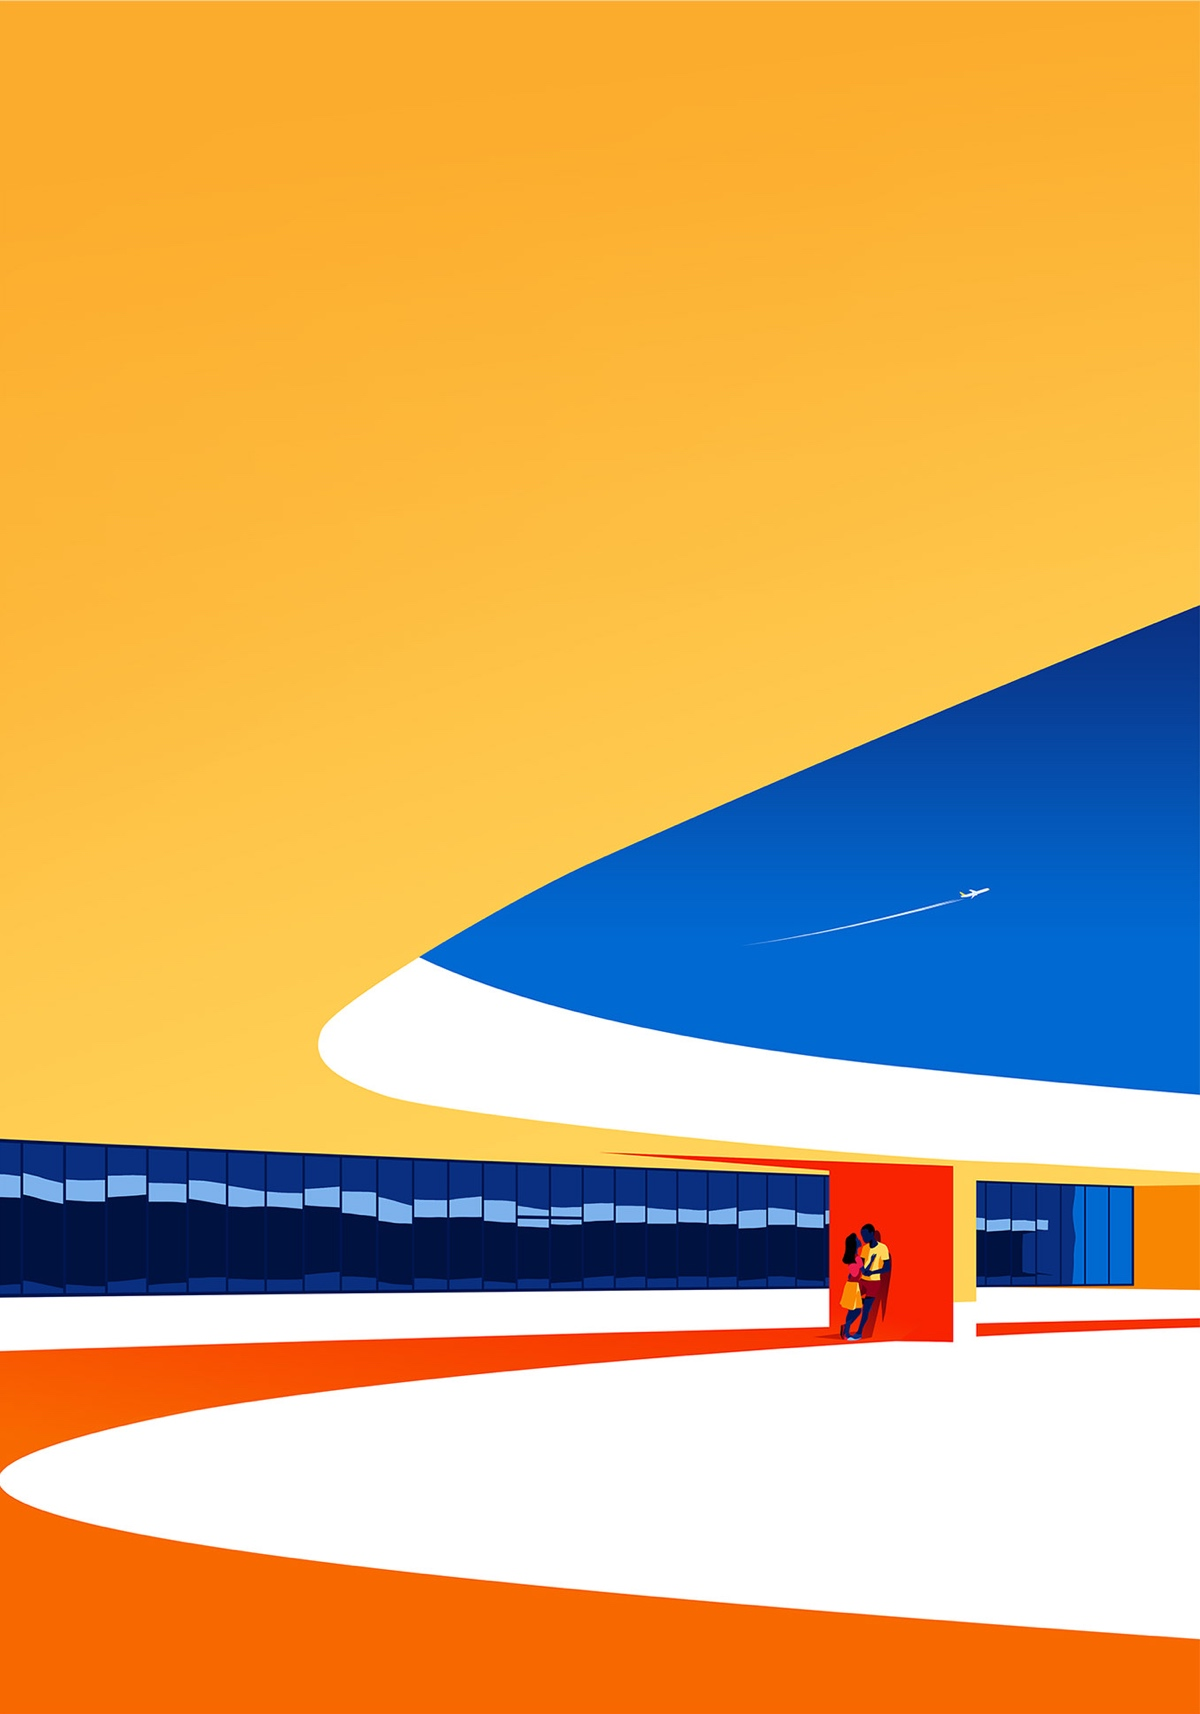 oscar-niemeyer-architecture-illustrations-levente-szabo-7